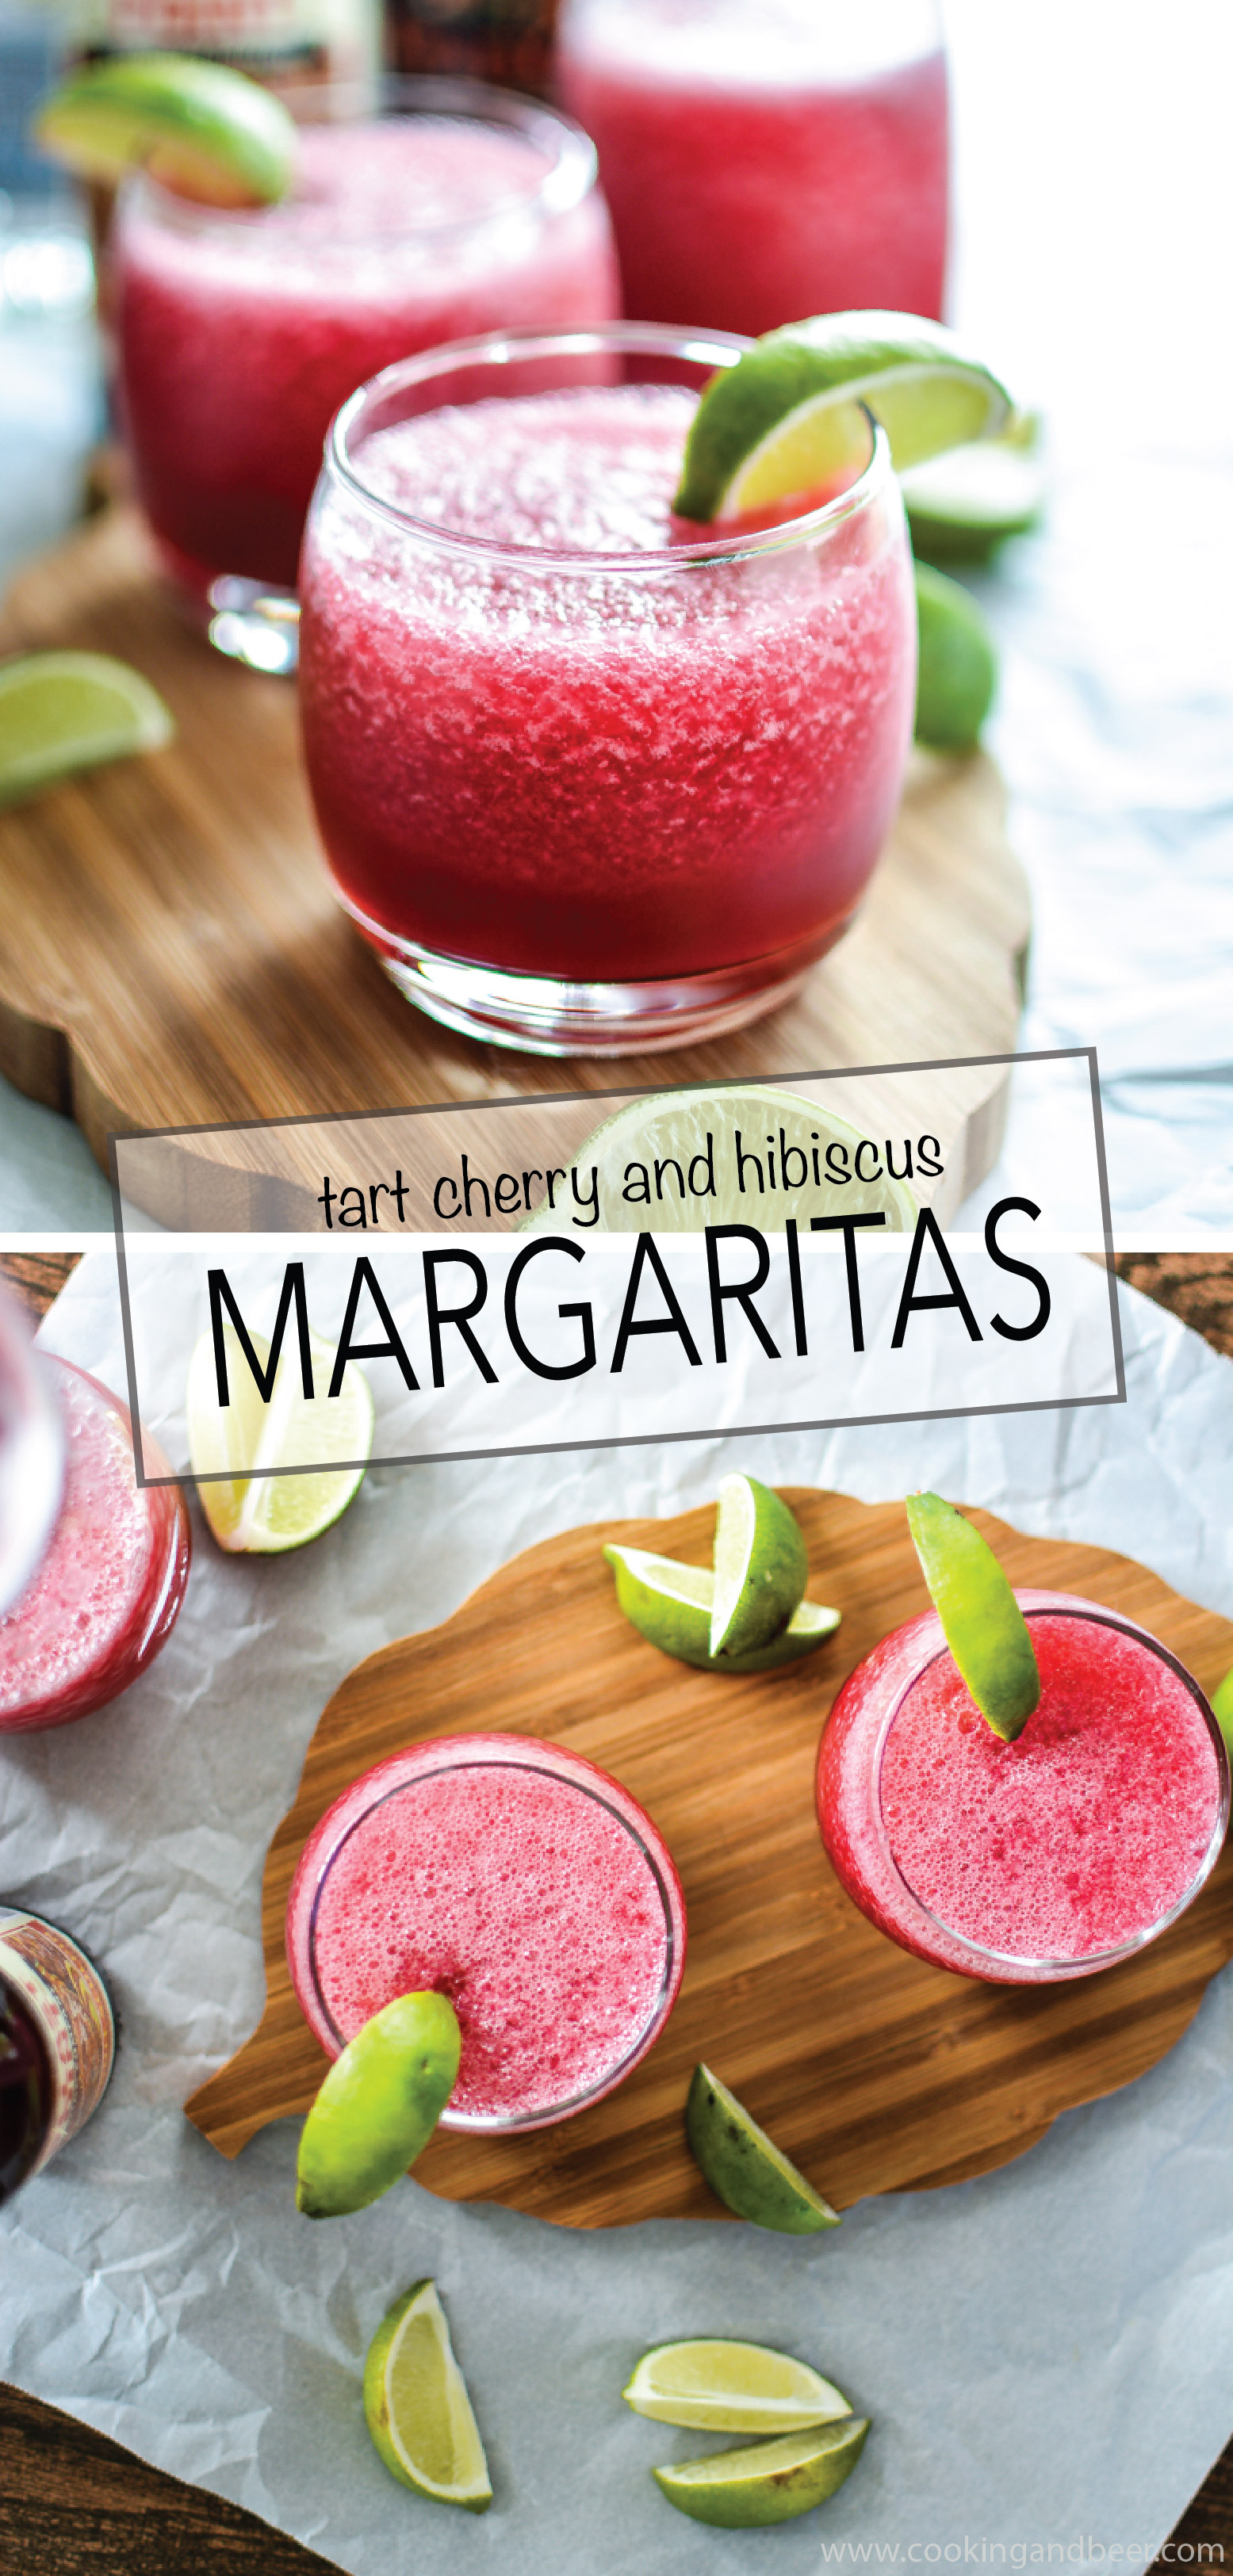 Your summer needs some Tart Cherry and Hibiscus Beer Margaritas in it! | www.cookingandbeer.com